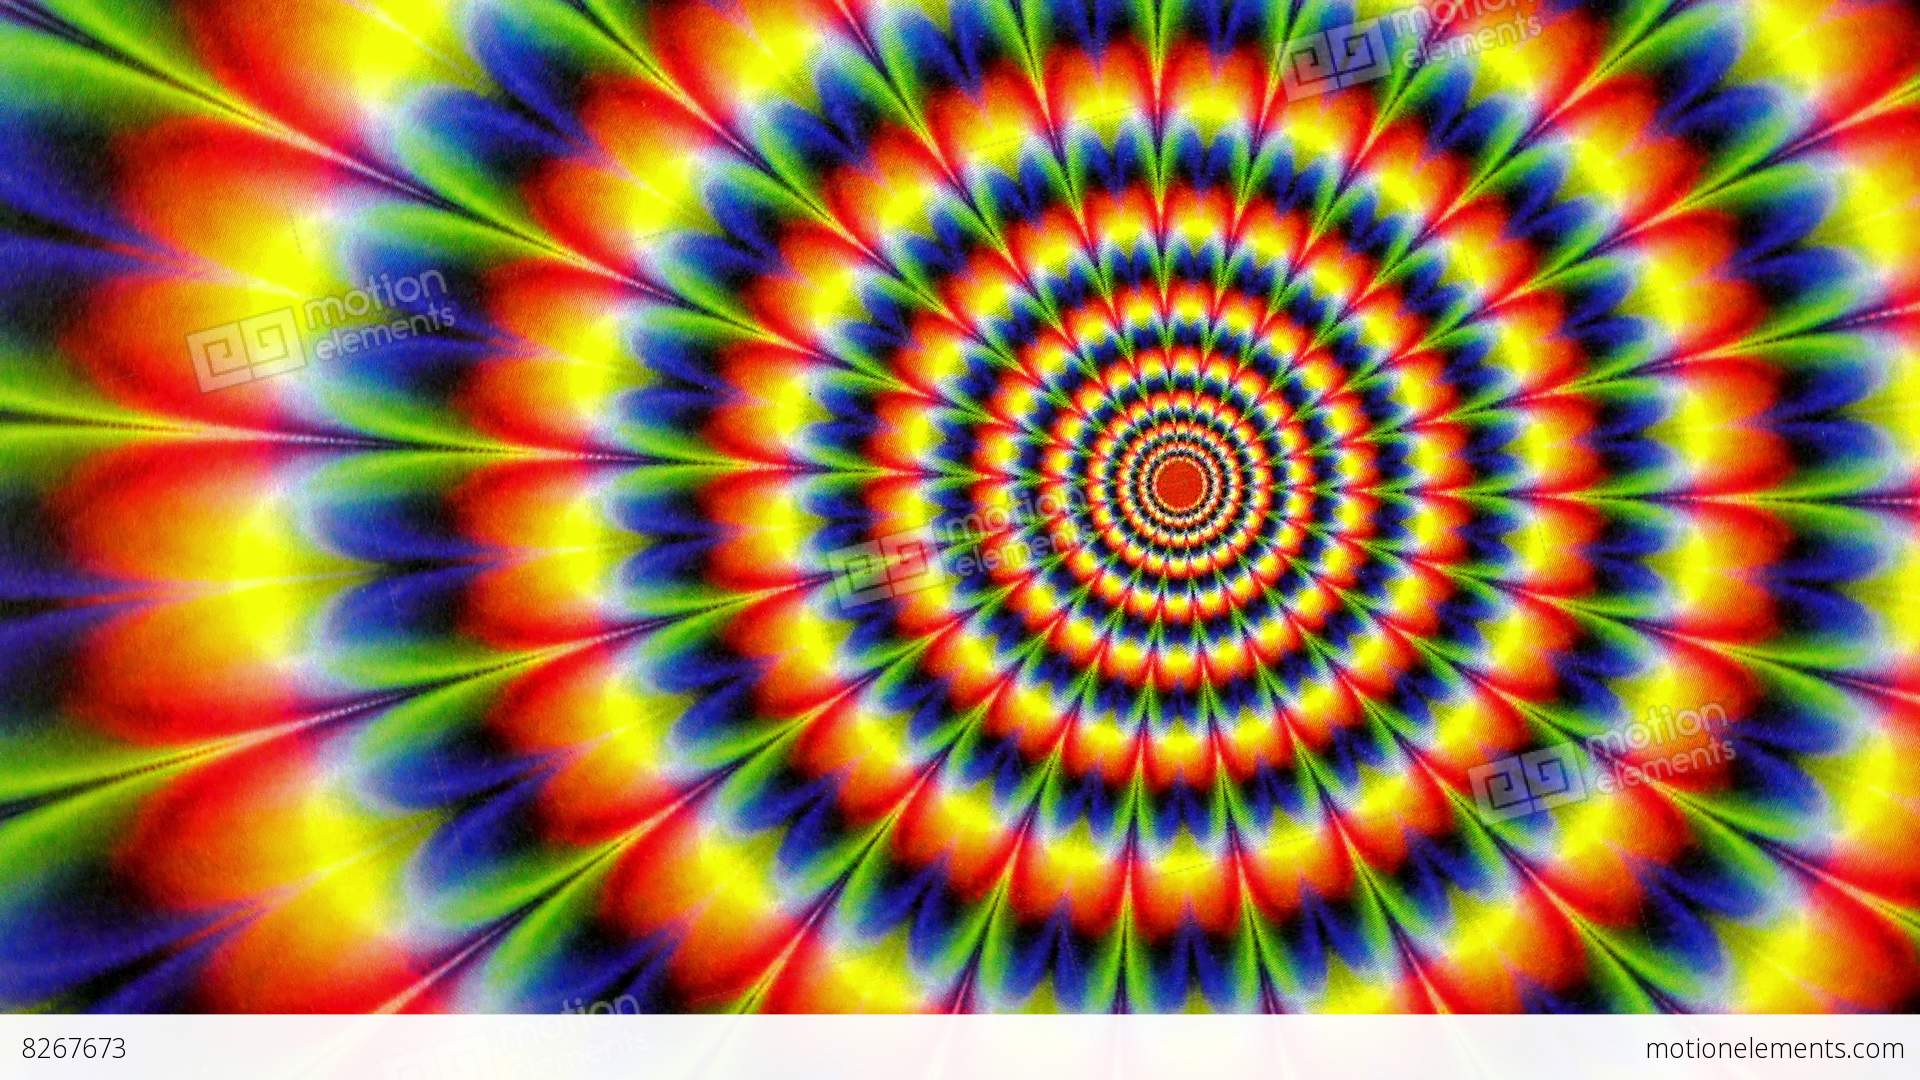 Shiva Animated Wallpaper Hd Hippy Tie Dyed Radial Pattern Animation Background Stock